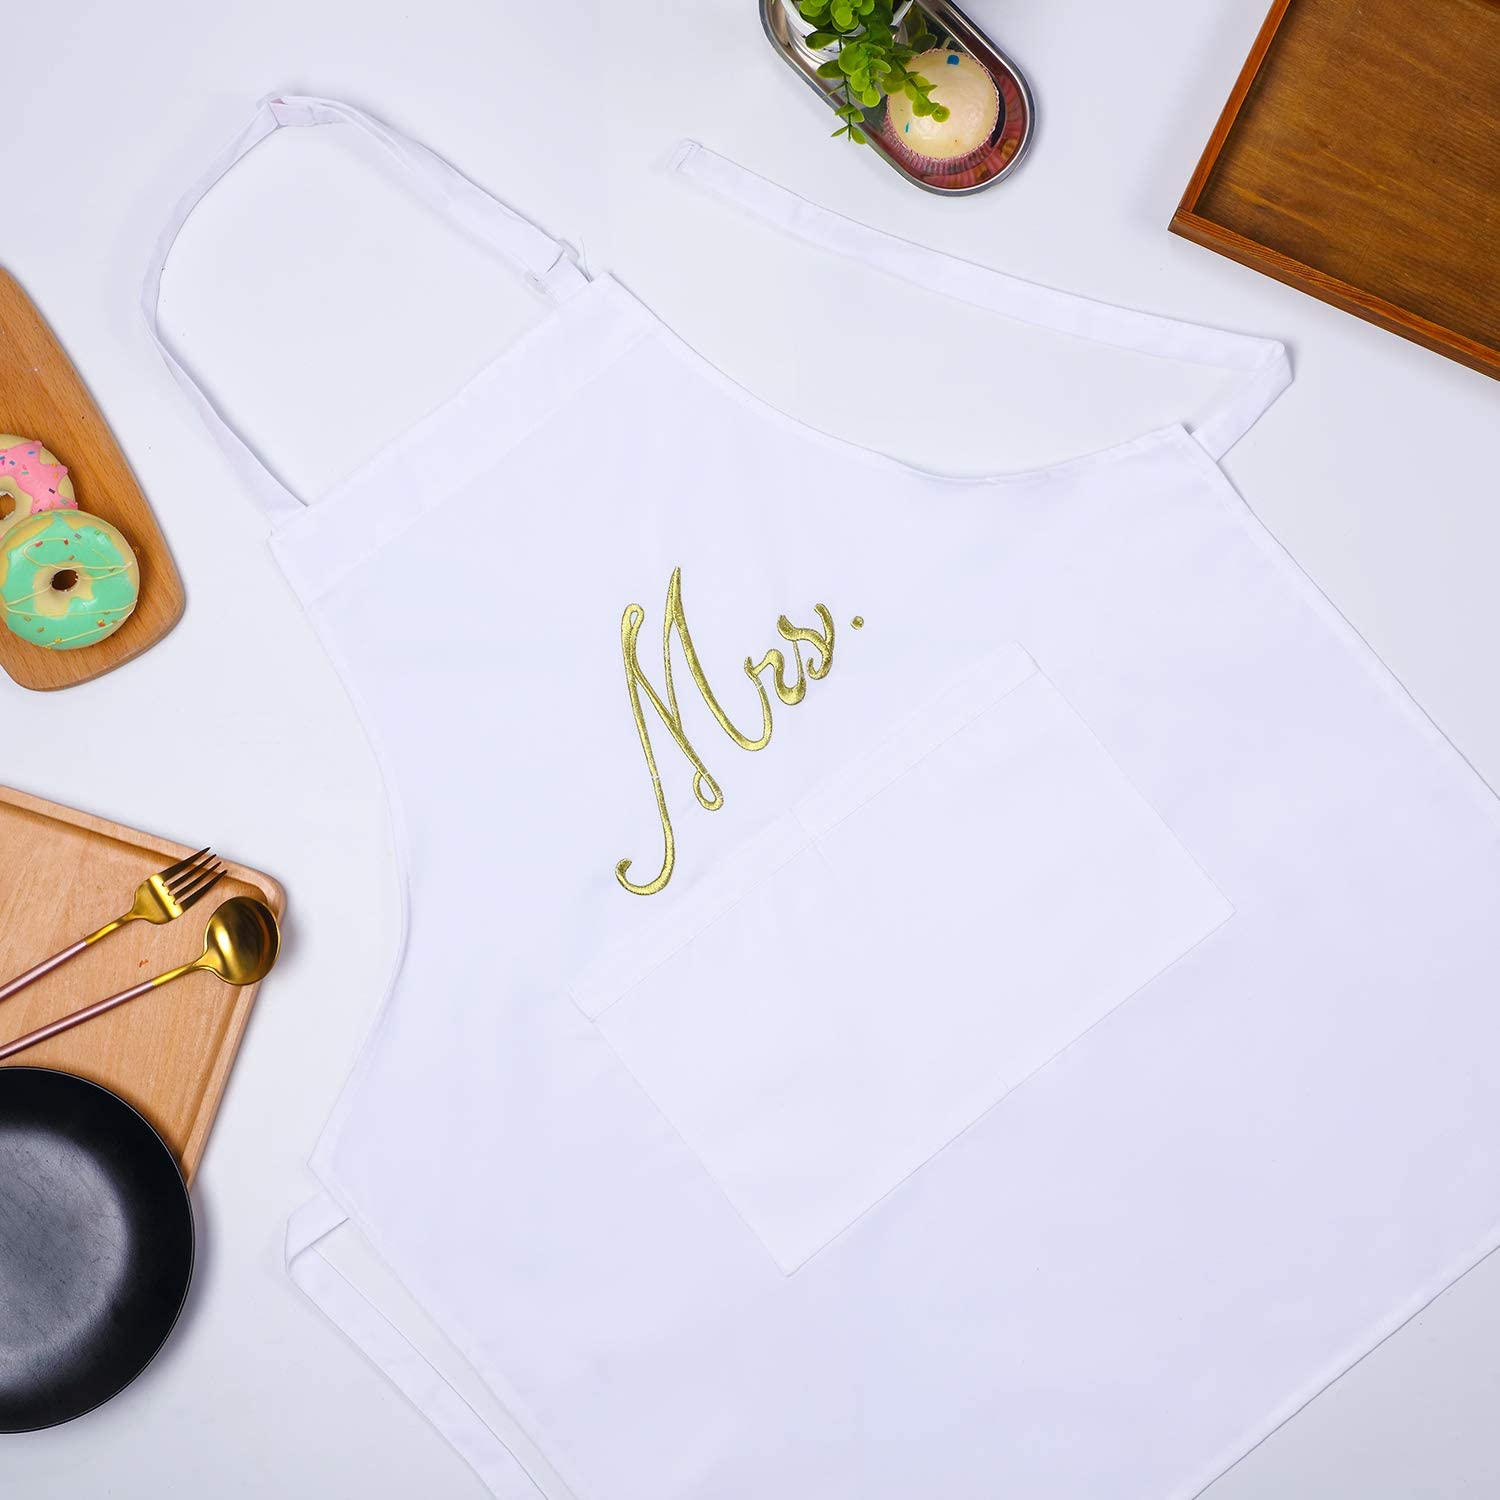 2 Piece Mr and Mrs Kitchen Apron Set Couple Aprons Matching Engagement Wedding Anniversary Bridal Shower Gift for Bride